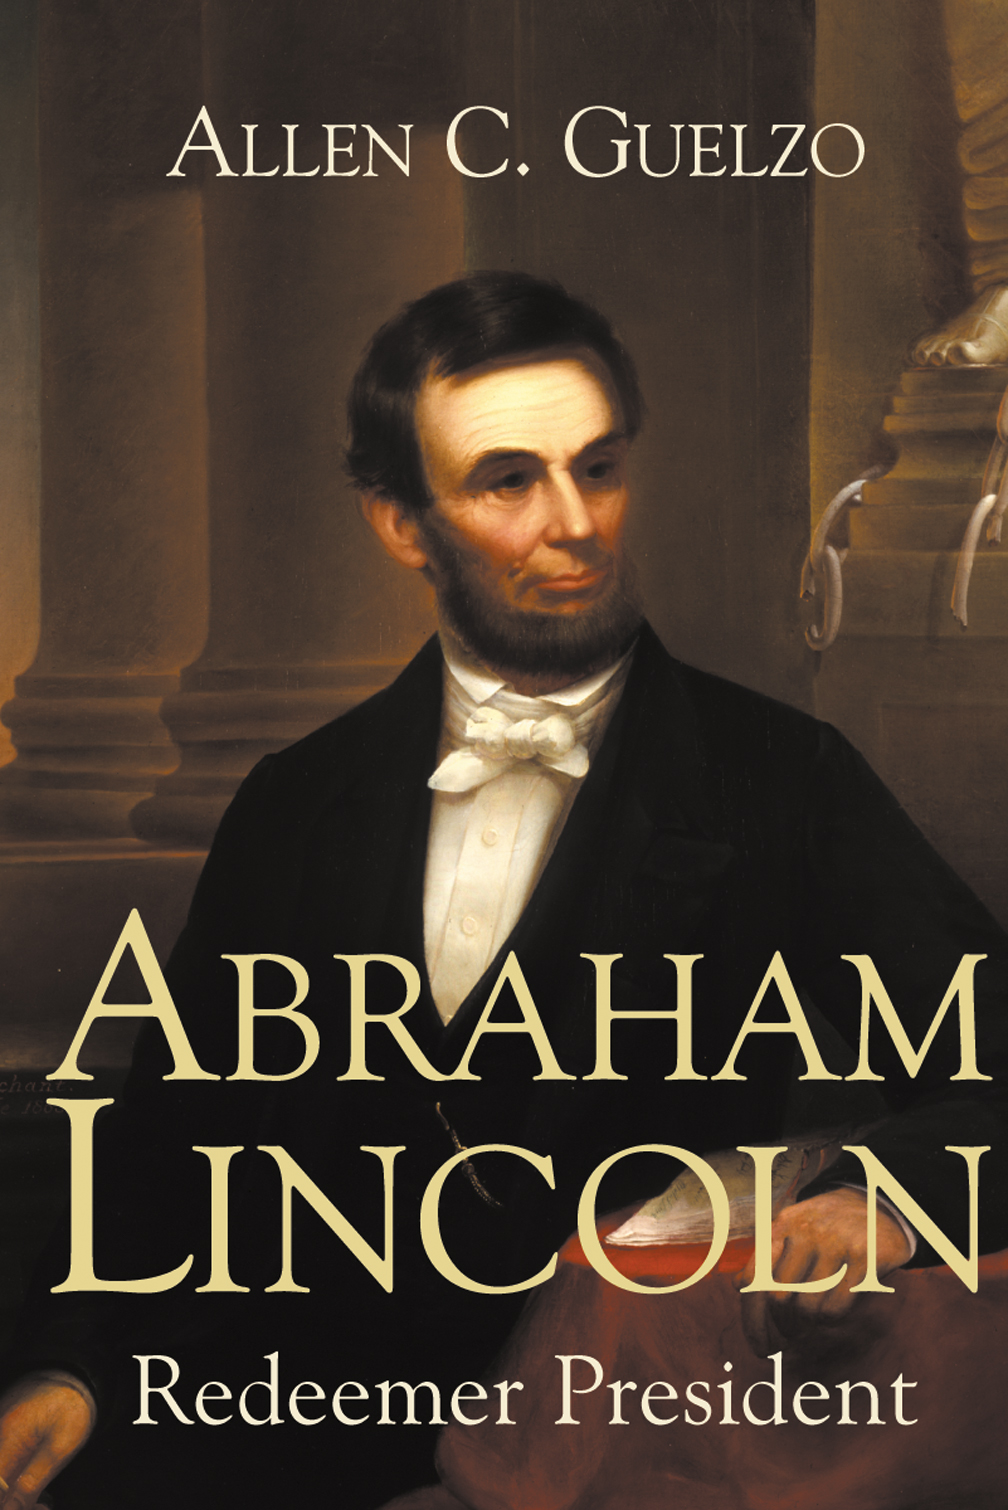 Ebook biography abraham download lincoln